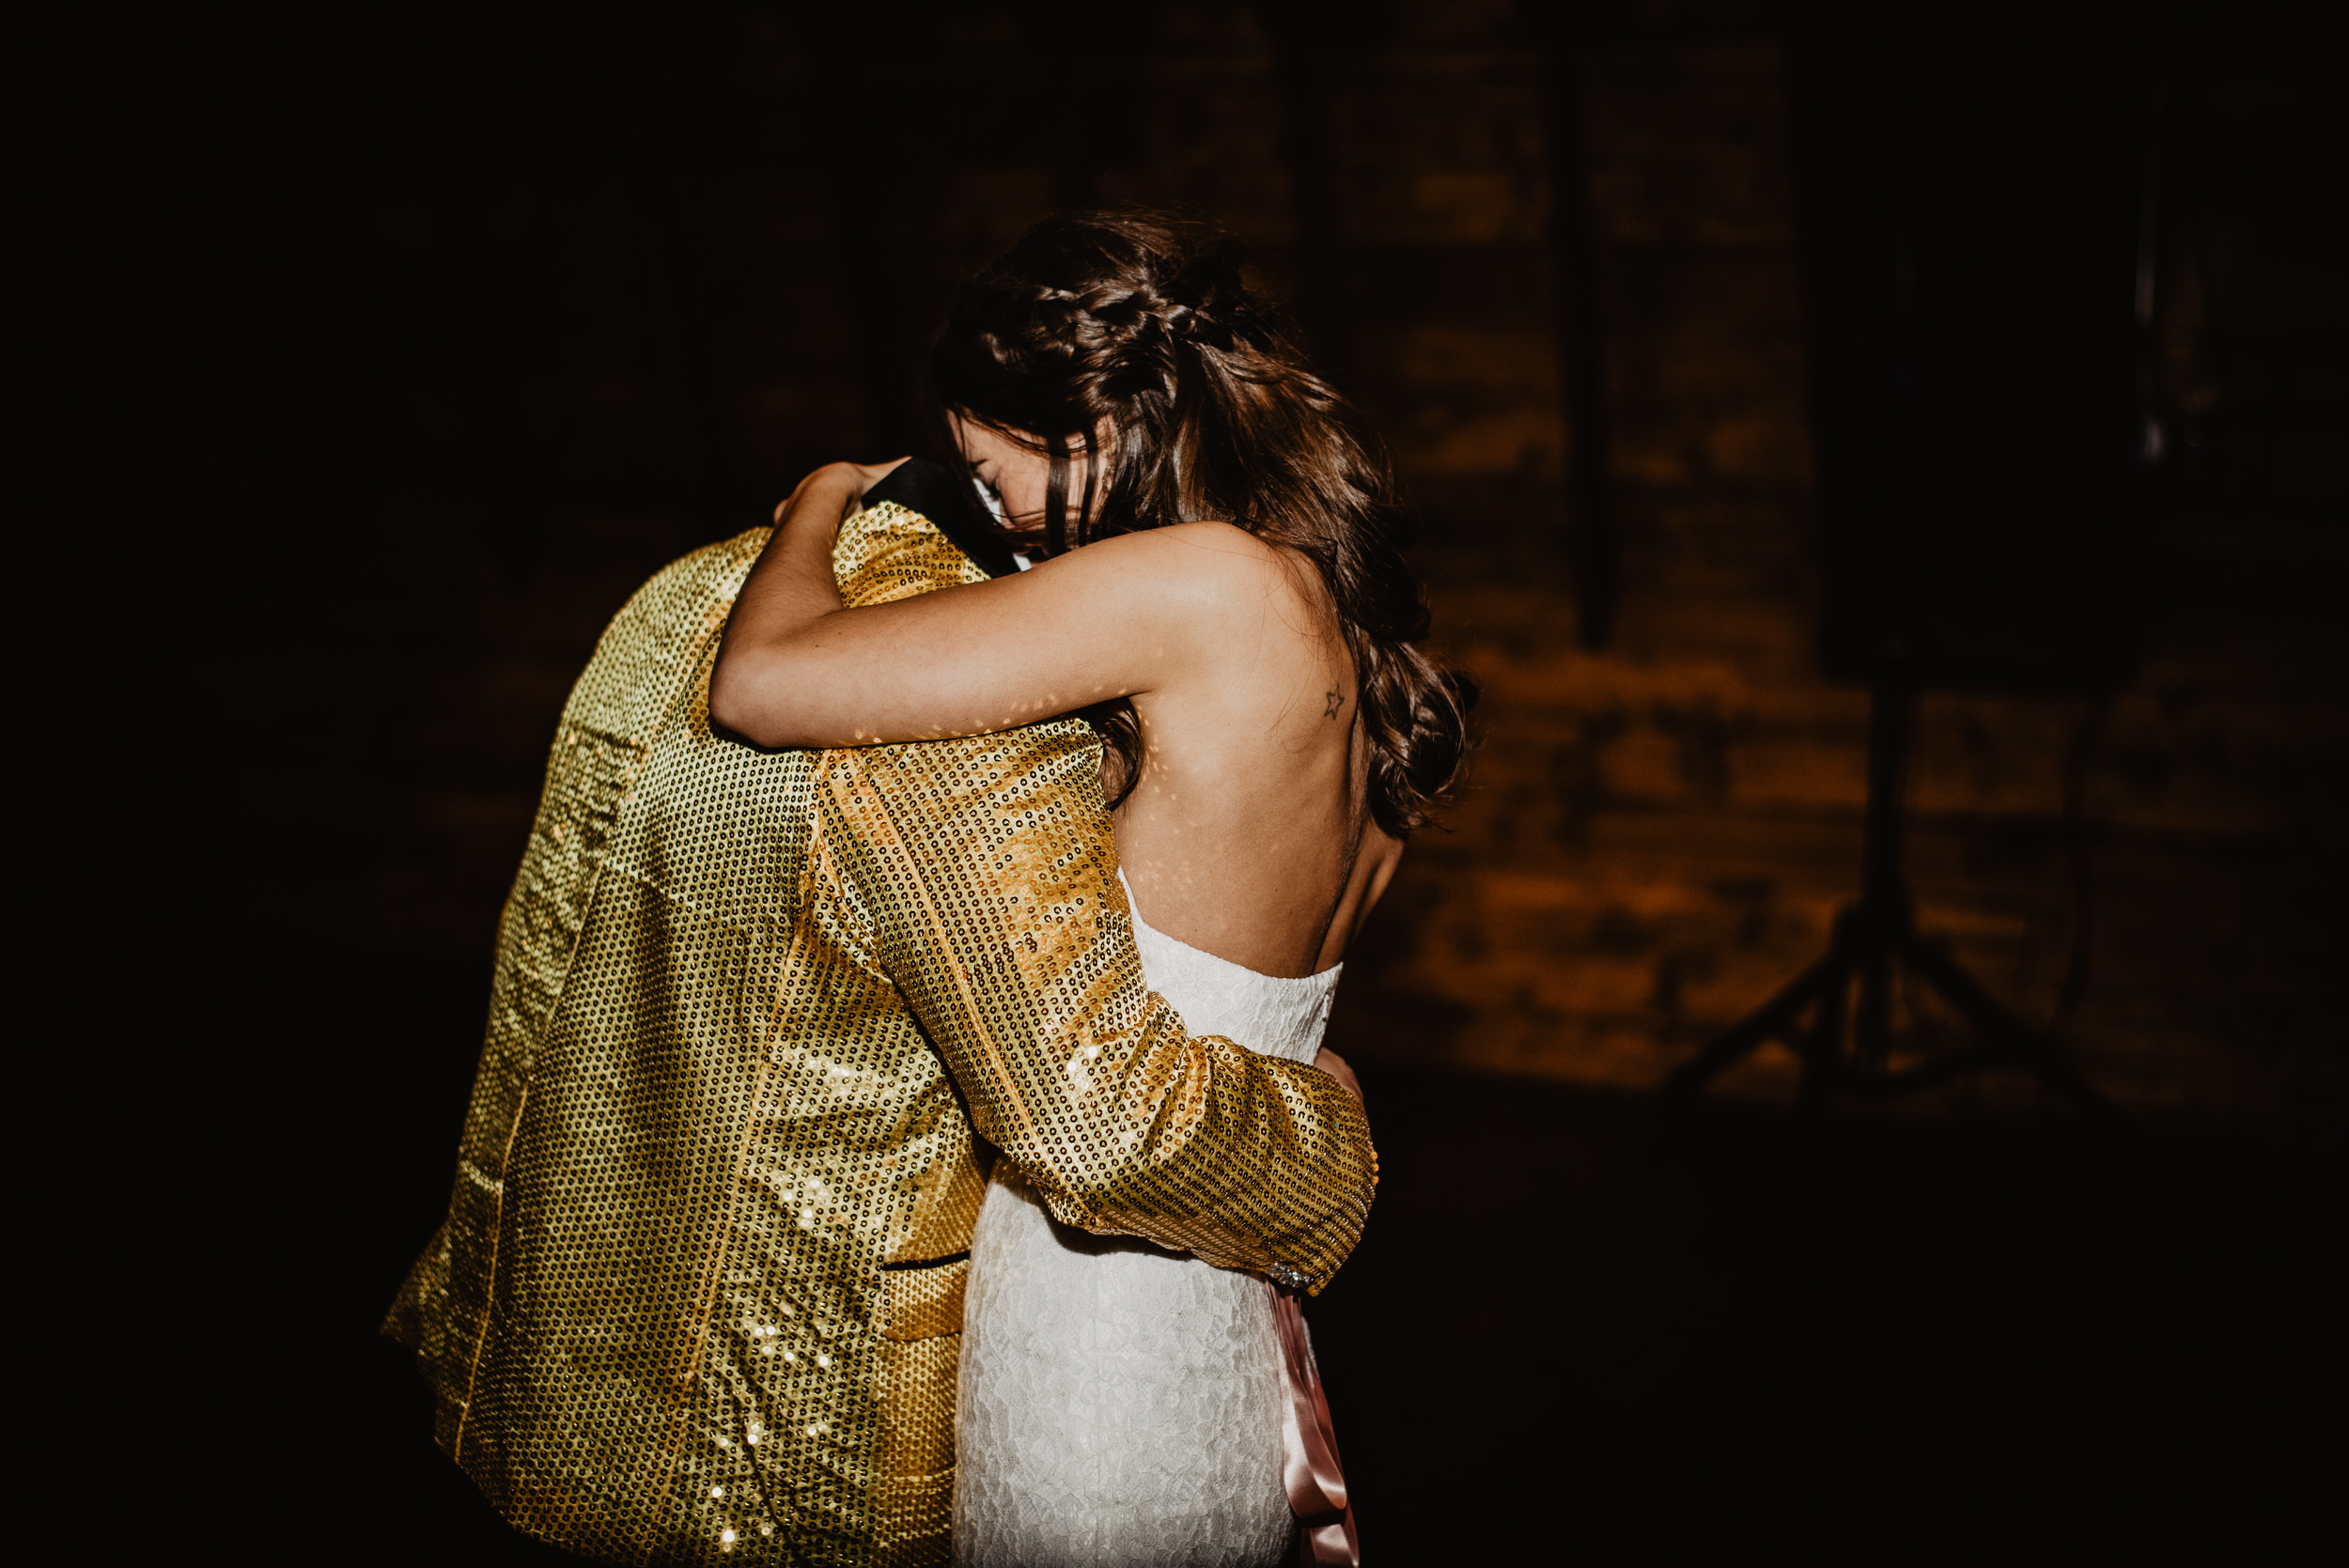 The Barn at the Ackerhurst Dairy Farm Omaha Nebraska Wedding Kaylie Sirek Photography126.jpg